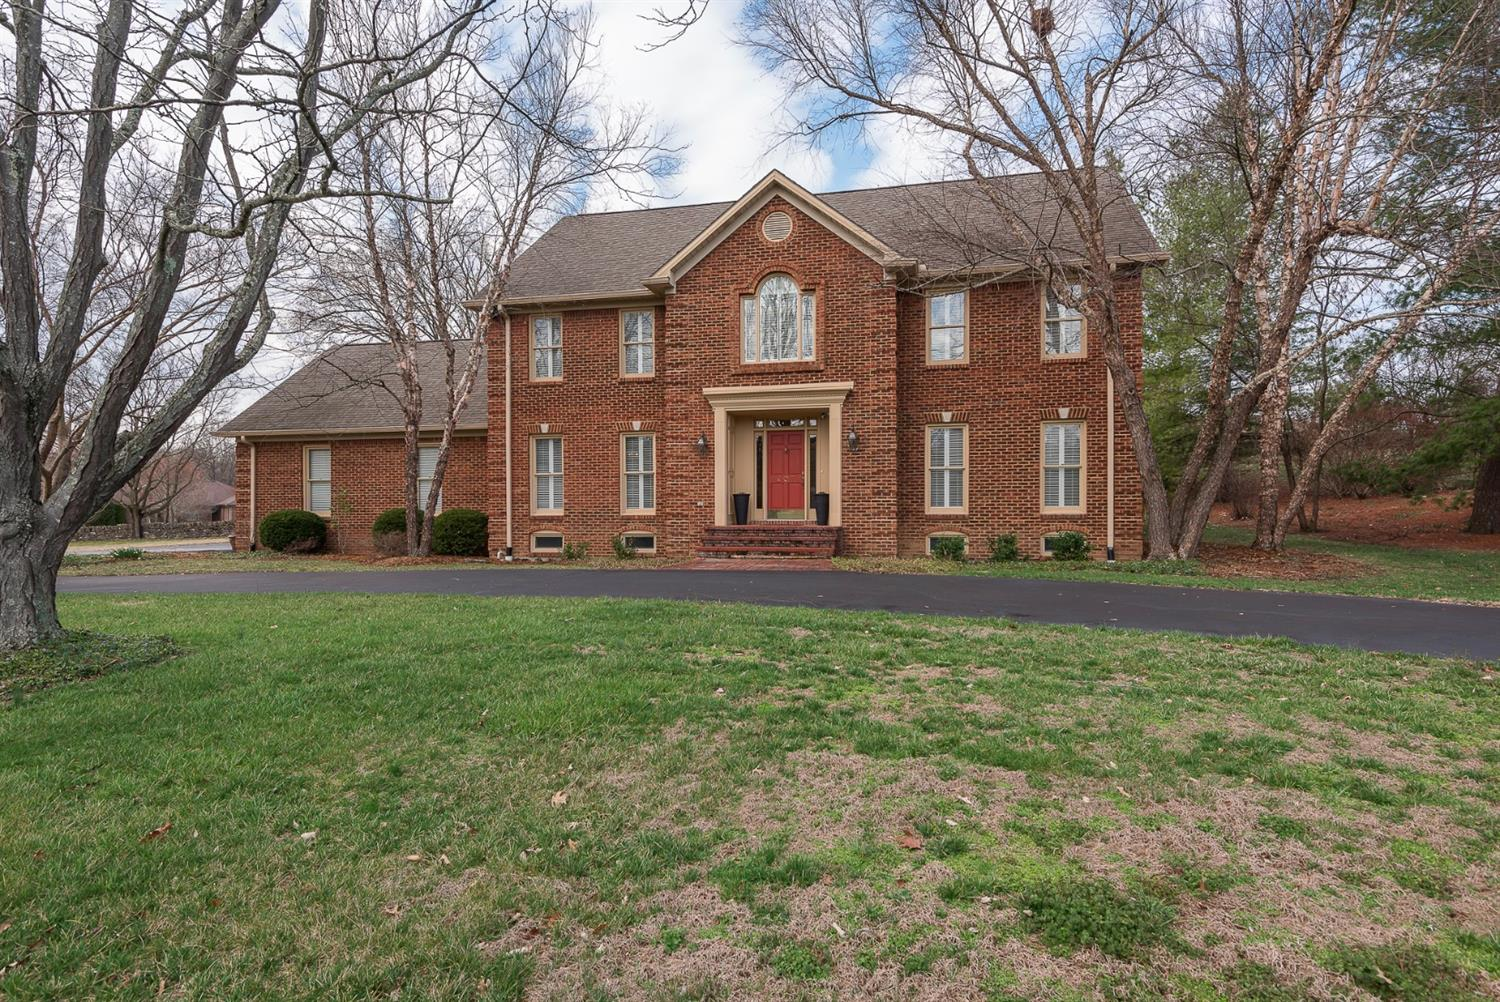 All-brick%204%20bedroom%20home%20with%20nearly%205,000%20sq%20ft,%20a%20basement,%20&%20a%20half%20acre%20lot.%20From%20the%20foyer's%20marble%20floors,%20to%20the%20stunning%20crown%20molding%20&%20custom%20features,%20this%20home%20will%20WOW%20you!%20Home%20has%20a%20large%20formal%20living%20room%20with%20wall-to-wall%20bookshelves%20&%20a%20gorgeous%20great%20room%20with%20a%20coffered%20ceiling,%20inviting%20fireplace,%20&%20direct%20access%20to%20the%20wonderful%20screened%20porch.%20Kitchen%20has%20custom%20cabinets,%20stainless%20steel%20appliances%20(including%20dual%20ovens%20&%20a%20surface%20unit)%20along%20w/%20a%20large%20island%20-%20adding%20even%20more%20counter%20&%20cabinet%20space.%20Spacious%20formal%20dining%20room%20with%20french%20doors%20makes%20entertaining%20easy.%20Large%20master%20suite%20features%20a%20separate%20sitting%20area%20&%20an%20enormous%20walk-in%20closet,%20along%20with%20an%20ensuite%20bathroom%20with%20separate%20whirlpool%20tub%20&%20shower.%203%20additional%20bedrooms%20are%20a%20good%20size.%20Basement%20has%20large%20rec%20room,%20a%20bonus%20room,%20&%20a%20kitchenette,%20along%20with%20tons%20of%20storage%20space.%20Love%20being%20outdoors?%20From%20the%20screened%20porch,%20step%20out%20onto%20the%20oversized%20patio%20&%20relax.%20This%20home%20has%20it%20all!